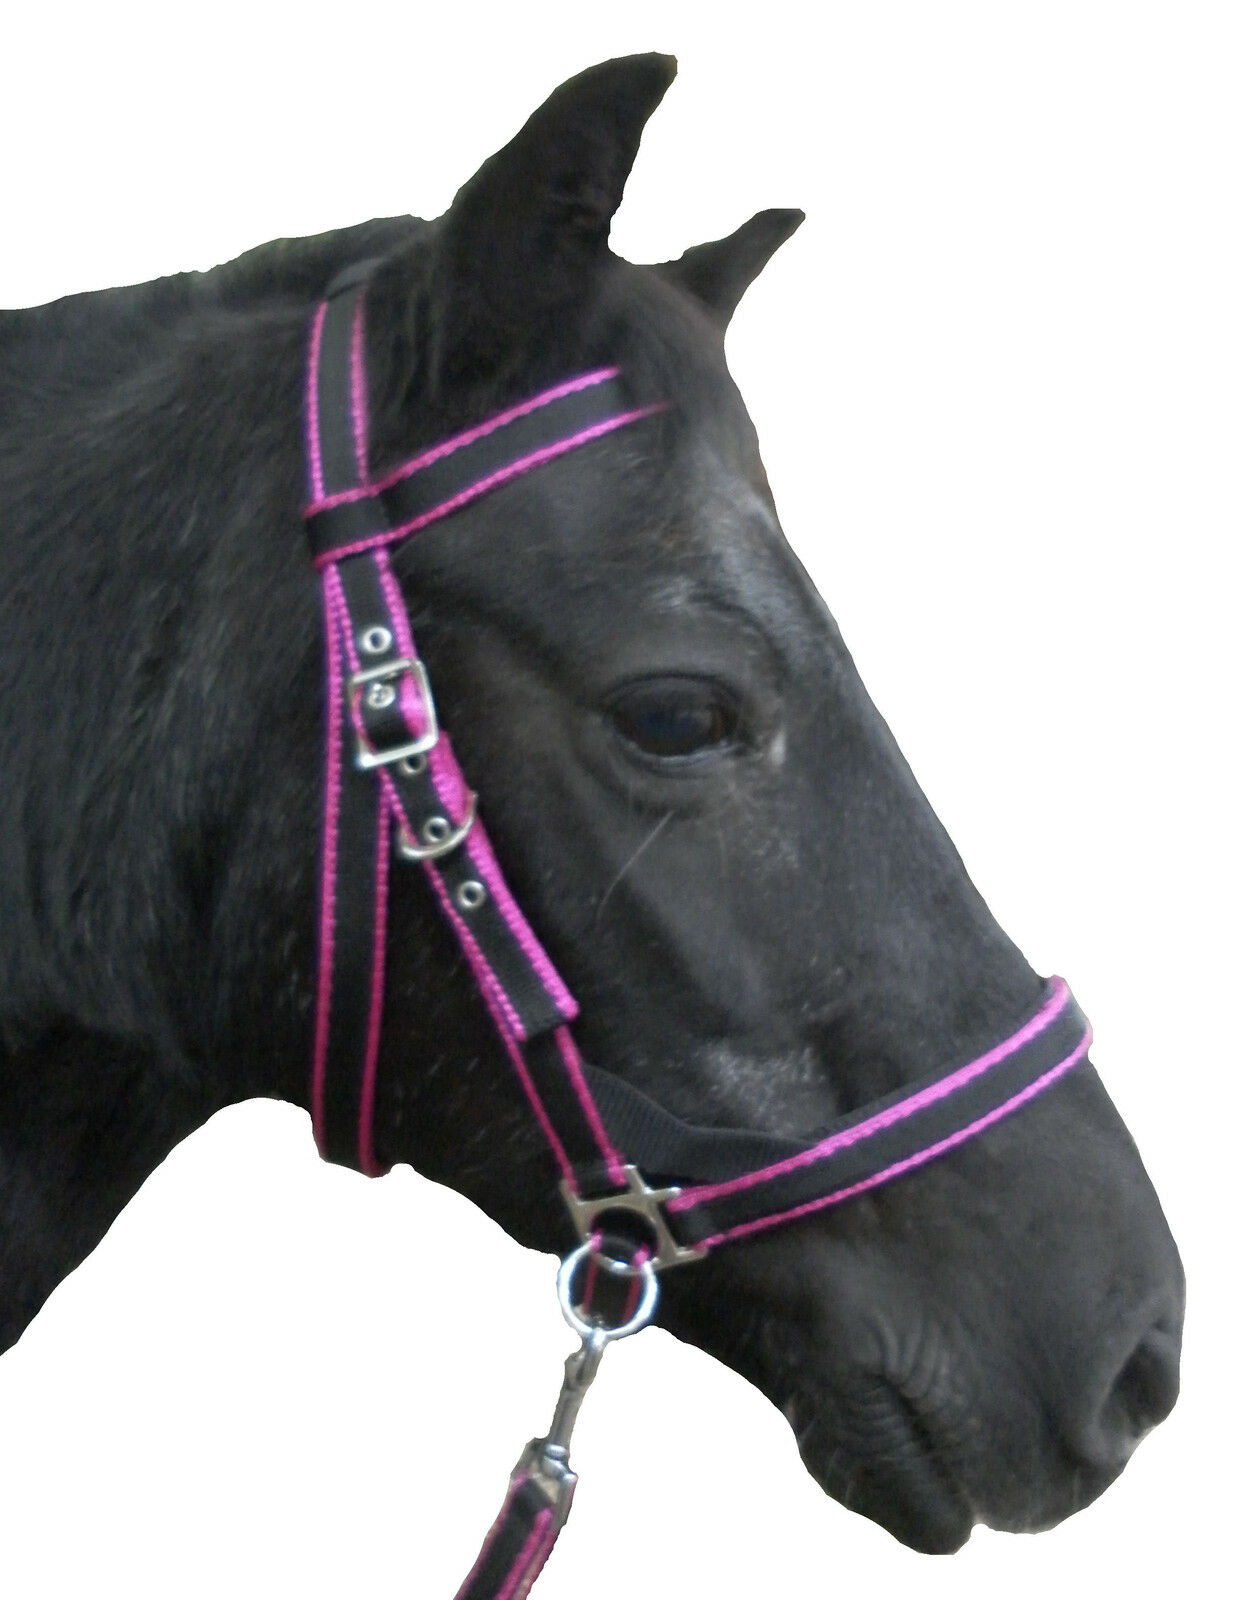 Official Libby's SCAWBRIG Bitless Bridle, Mini Small Pony, Pony Cob  Full, X Full  wholesale cheap and high quality